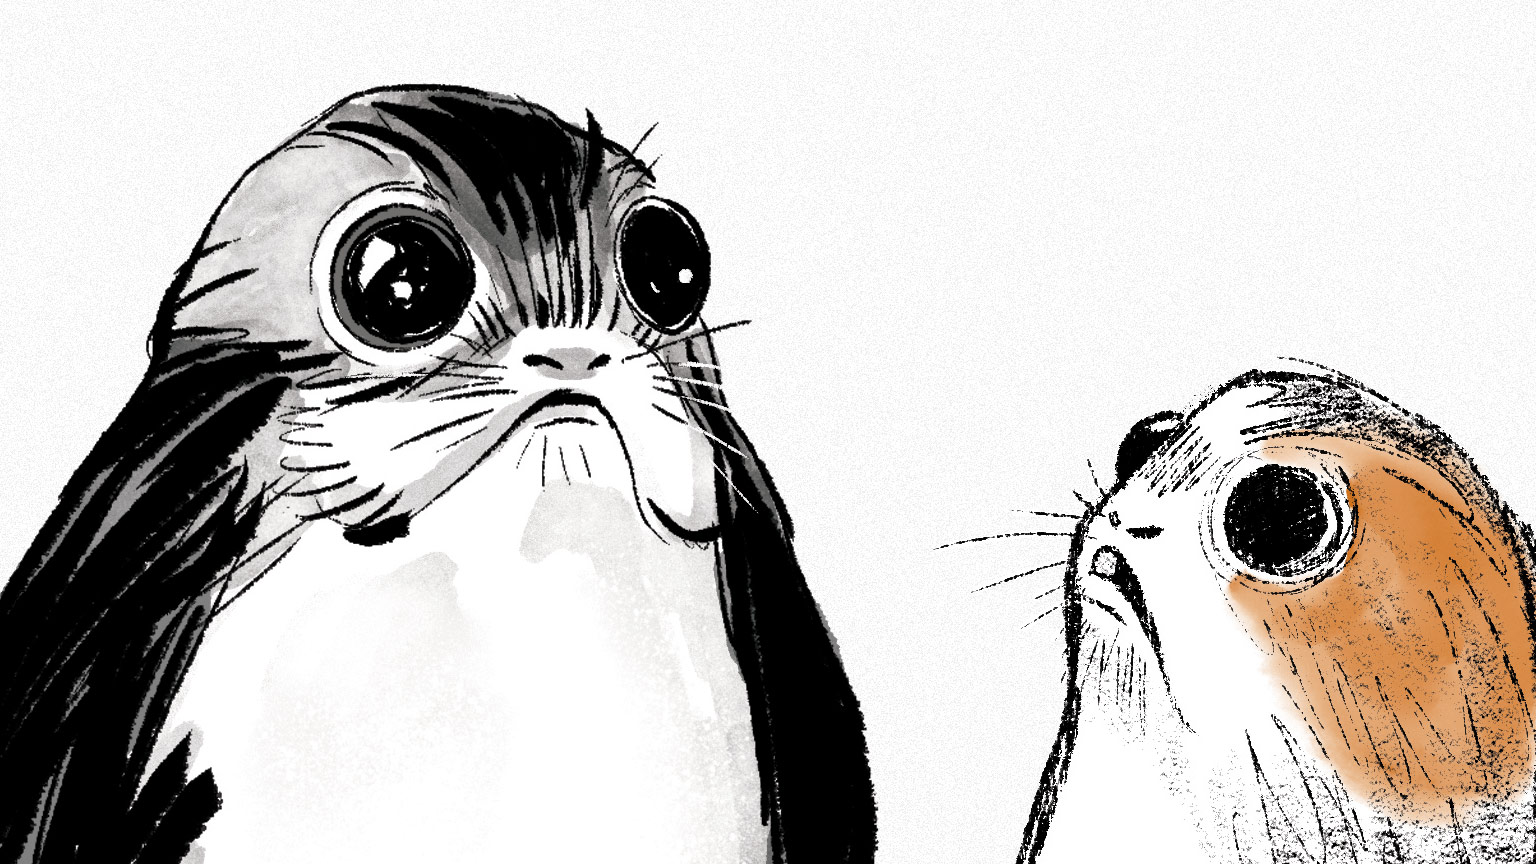 introducing porgs the cute new creatures from star wars